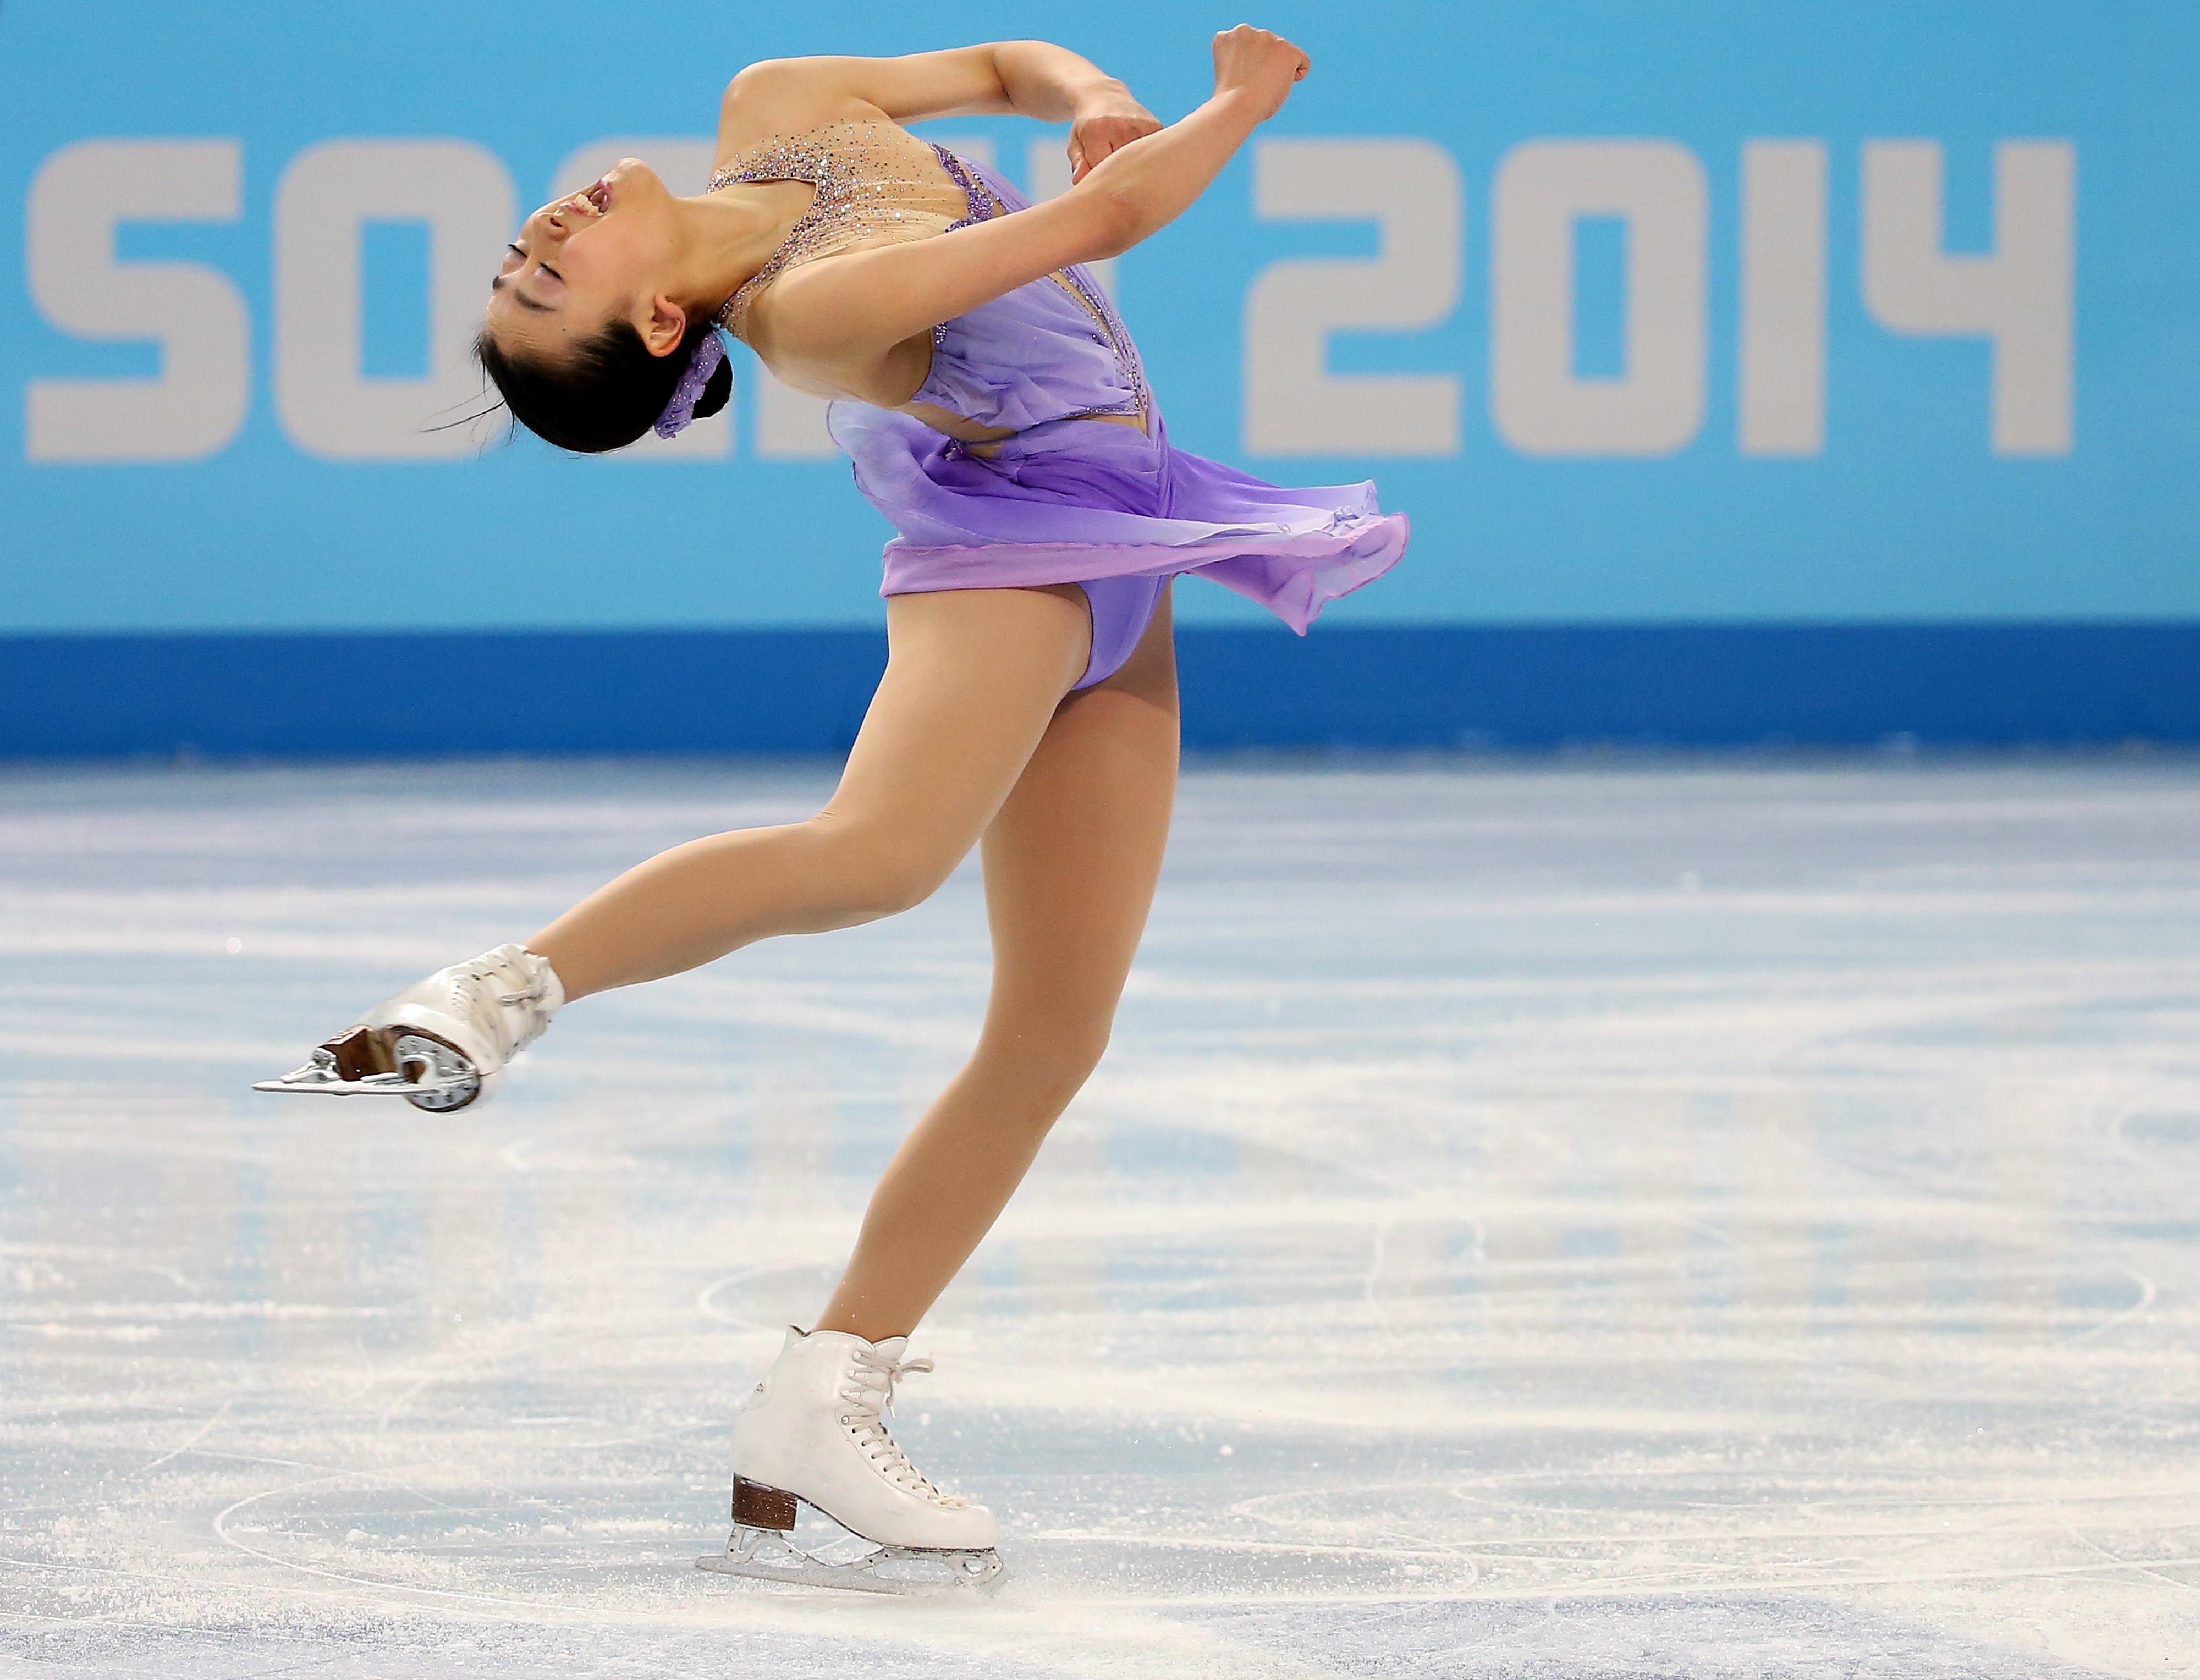 Mao asada of japan performs during the figure skating ladies short mao asada of japan performs during the figure skating ladies short program at iceberg skating palace during the sochi 2014 olympic games sochi ru voltagebd Gallery